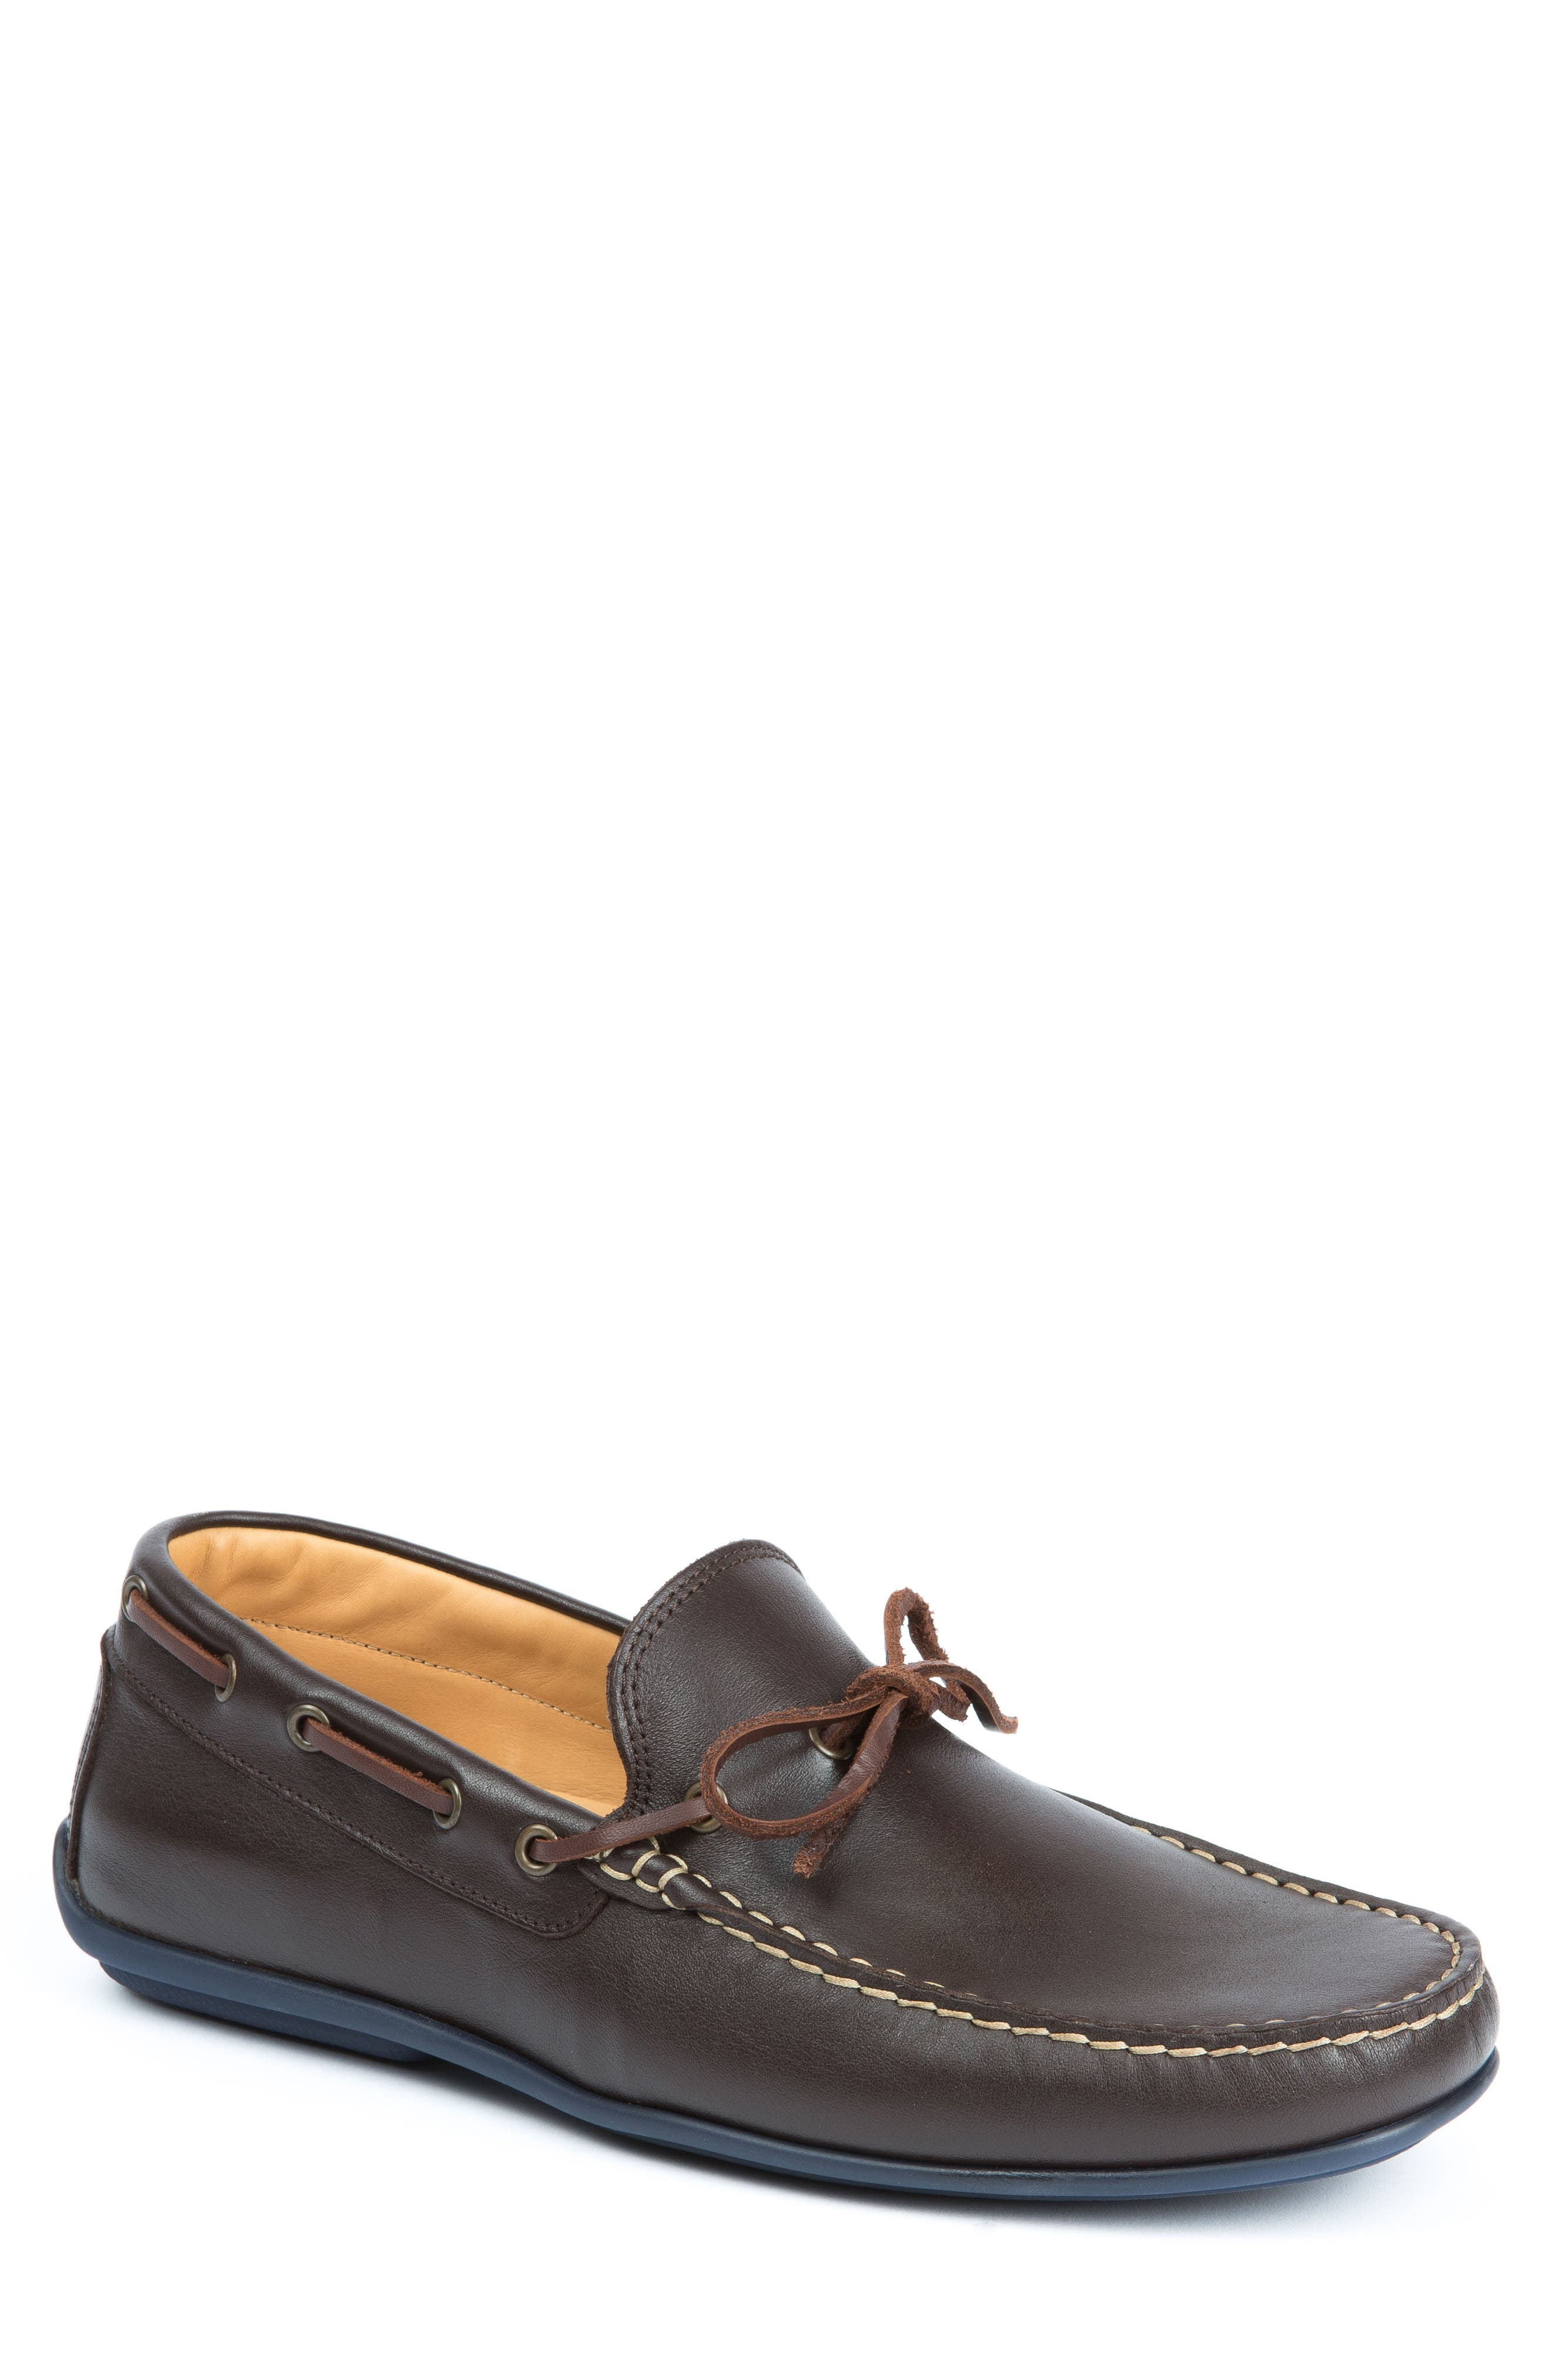 Fillmores Loafer,                             Main thumbnail 1, color,                             Brown Leather/ Natural/ Navy